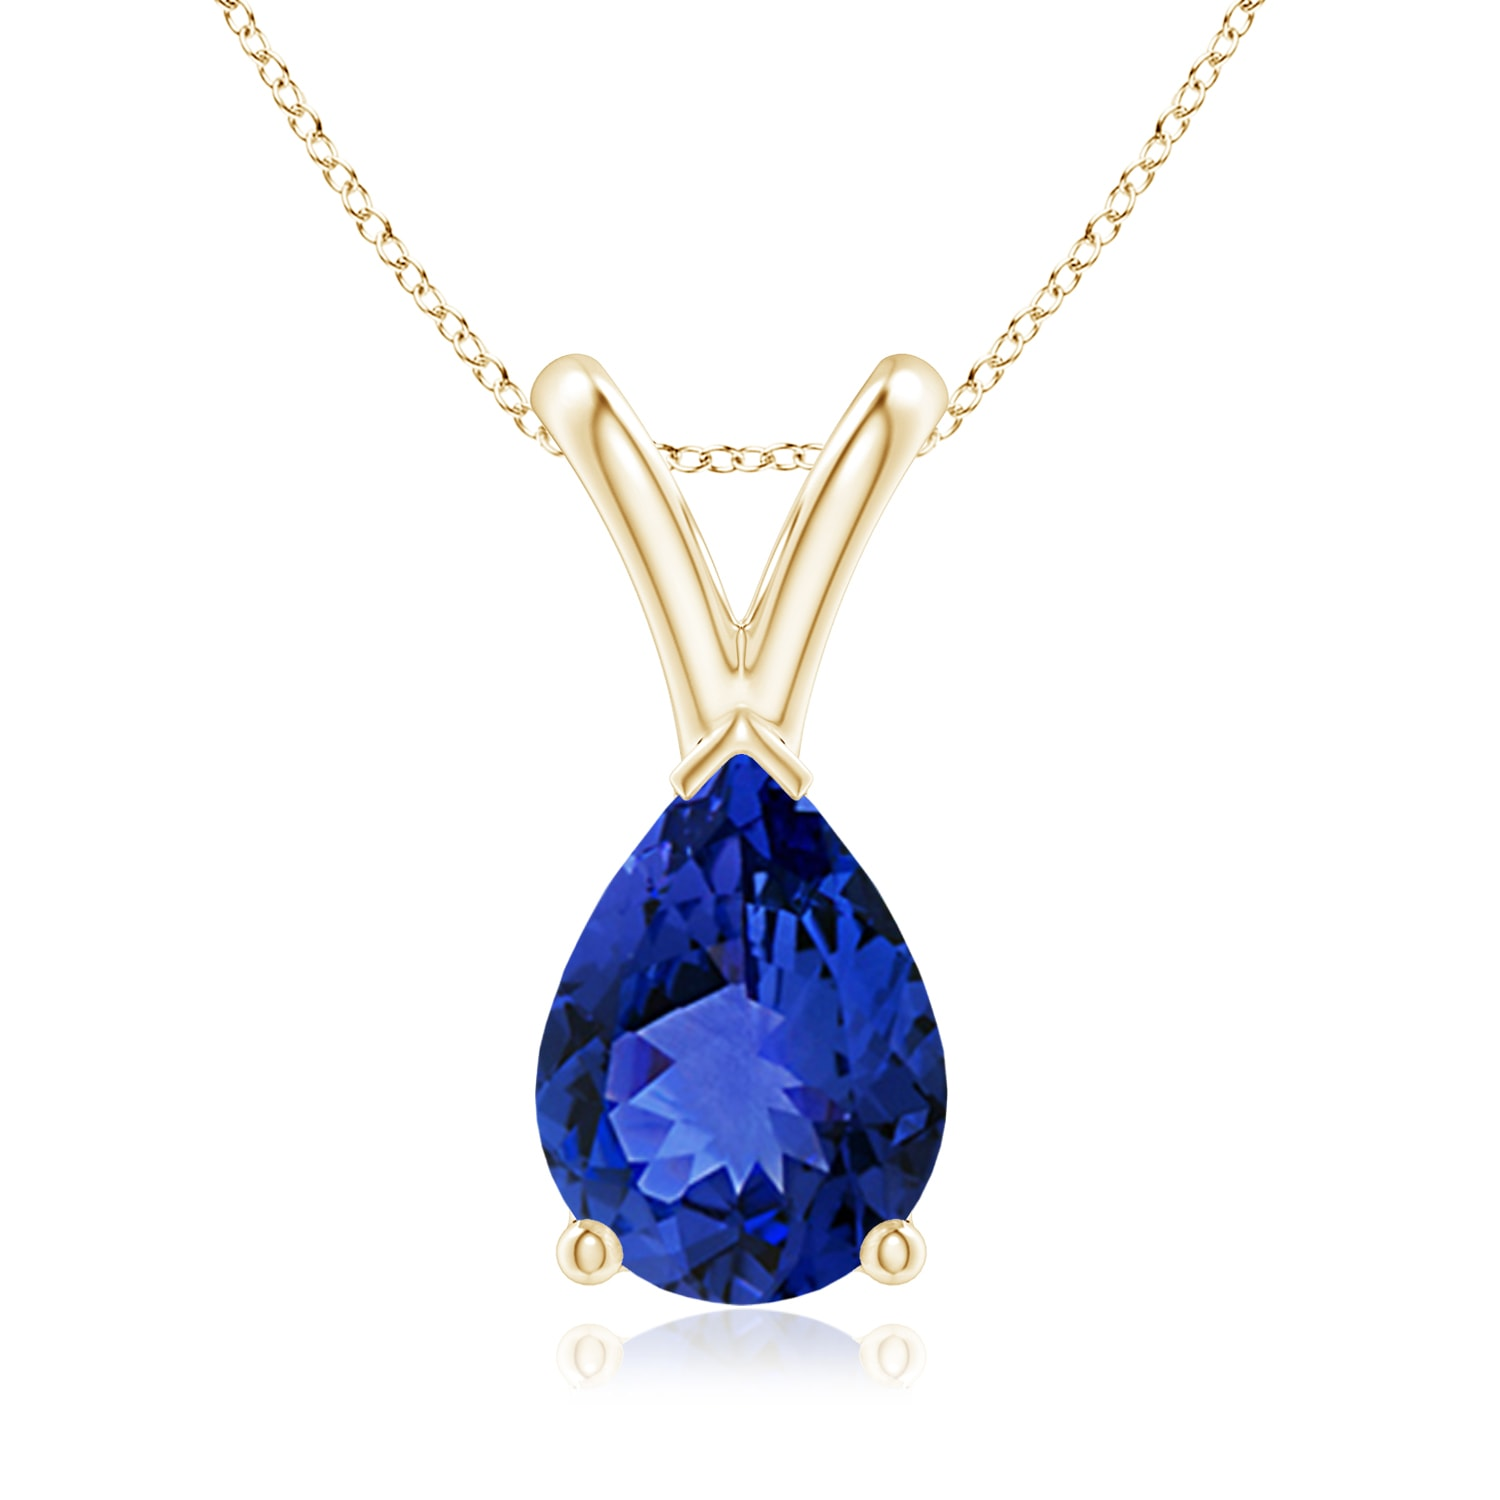 Tanzanite Necklace Tanzanite: Solitaire Shape Natural Tanzanite Pendant Necklace With 18